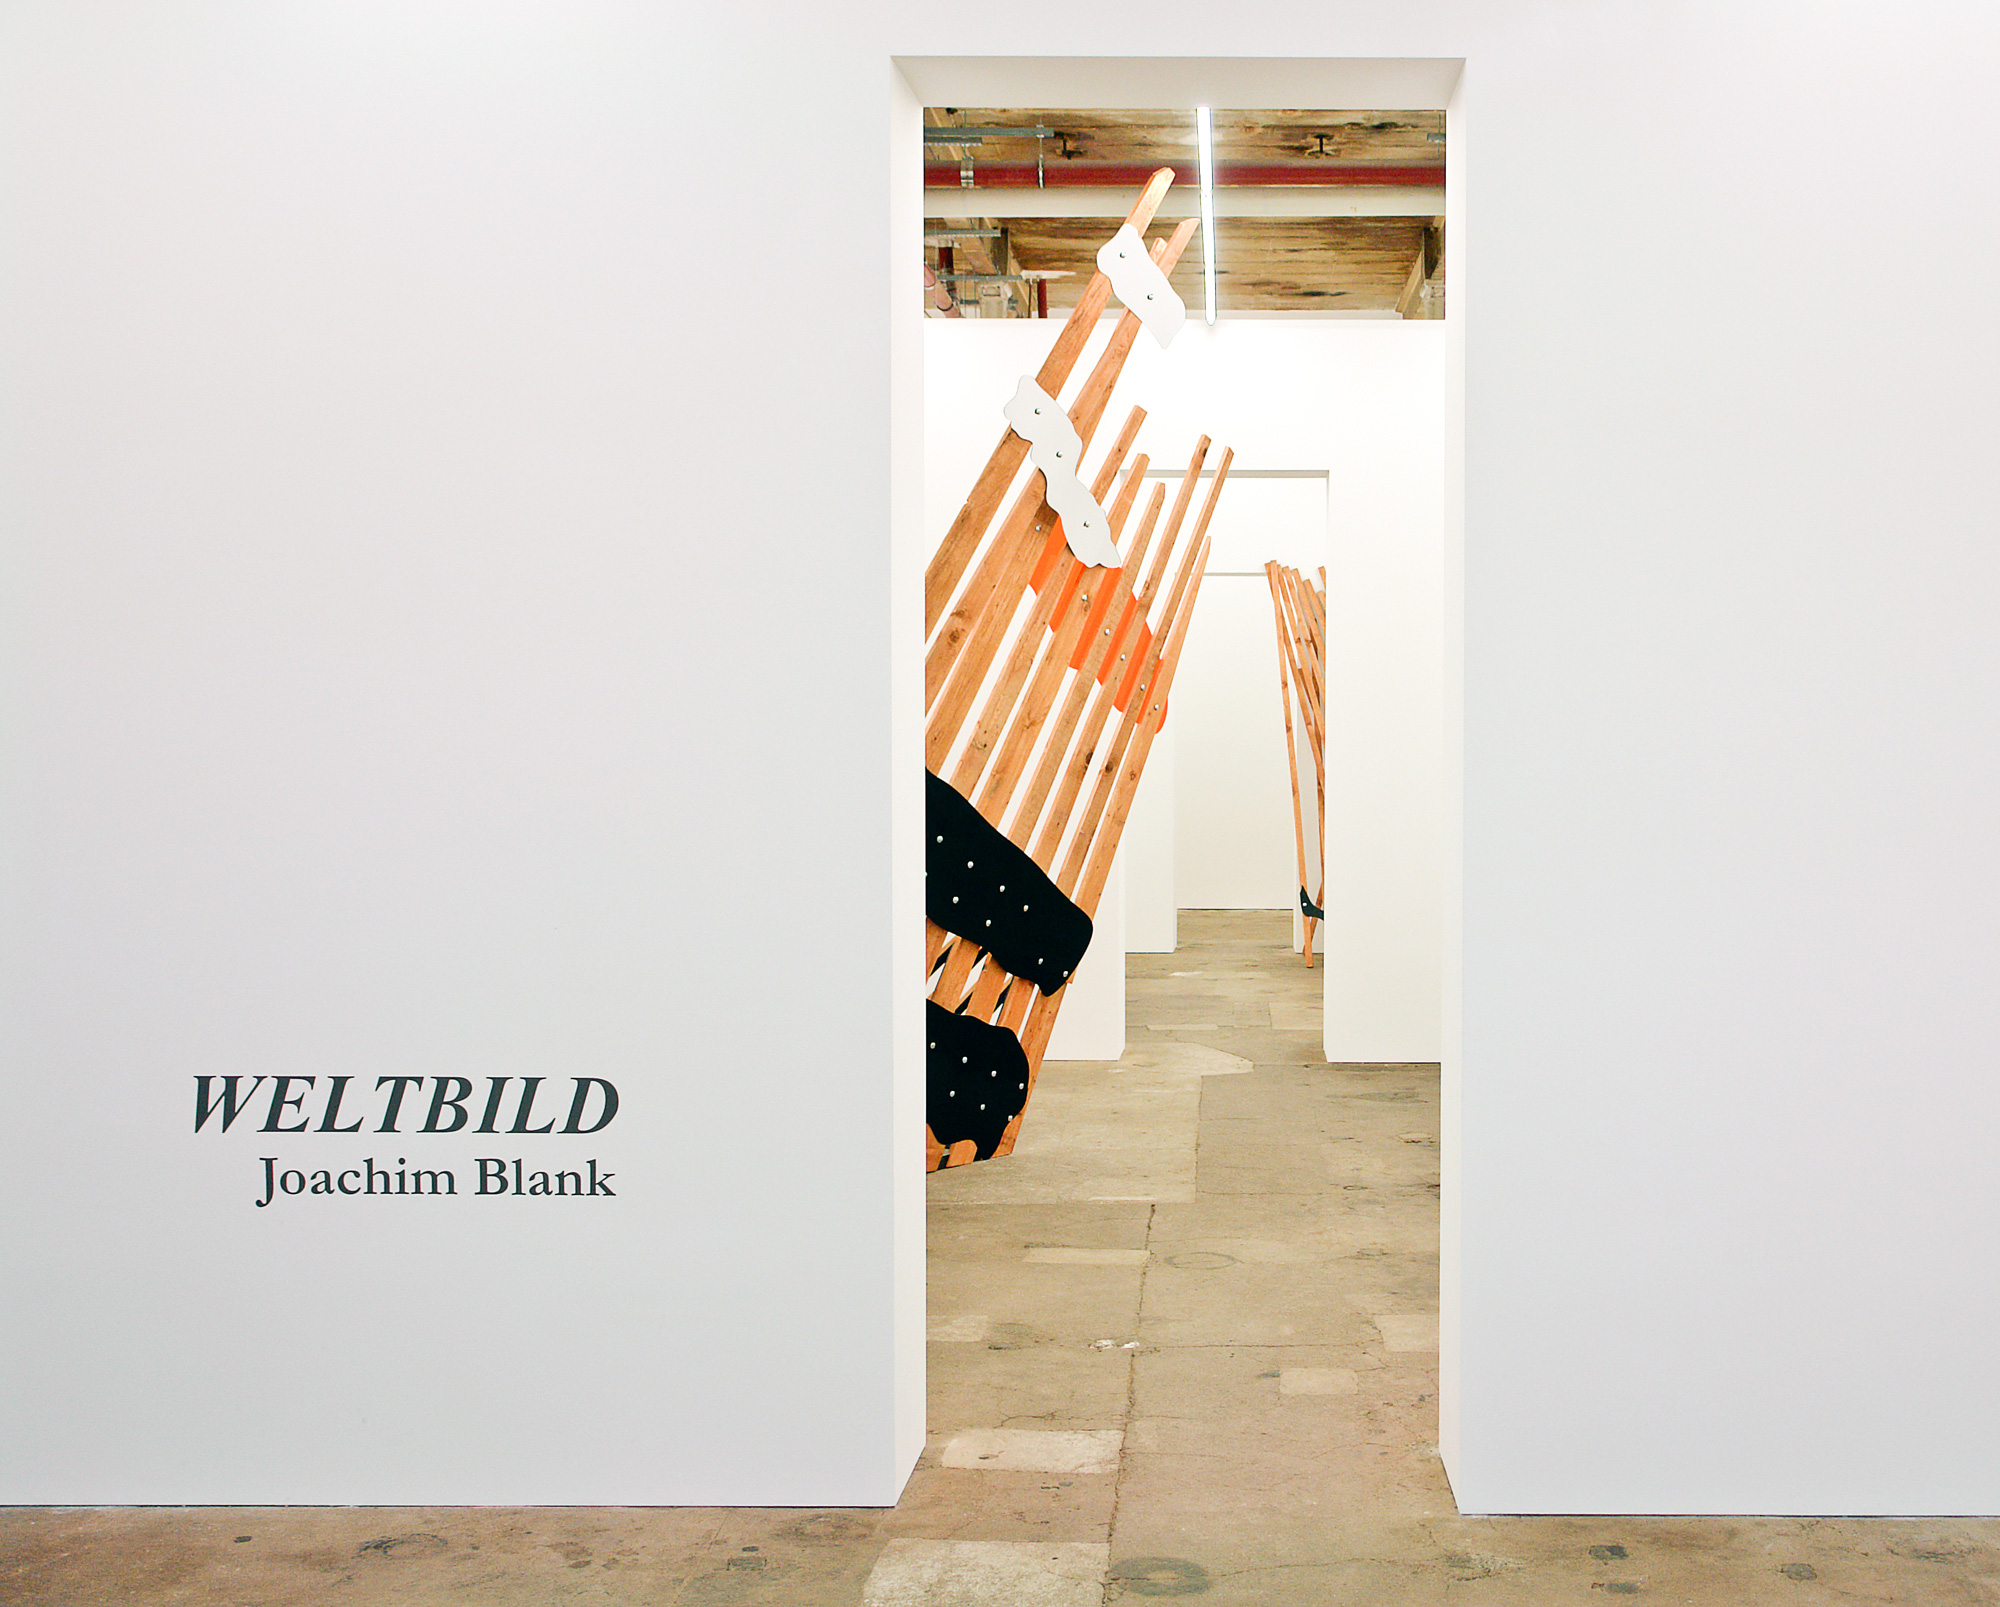 Columbus at Weltbild-exhibition, Filipp Rosbach Gallery